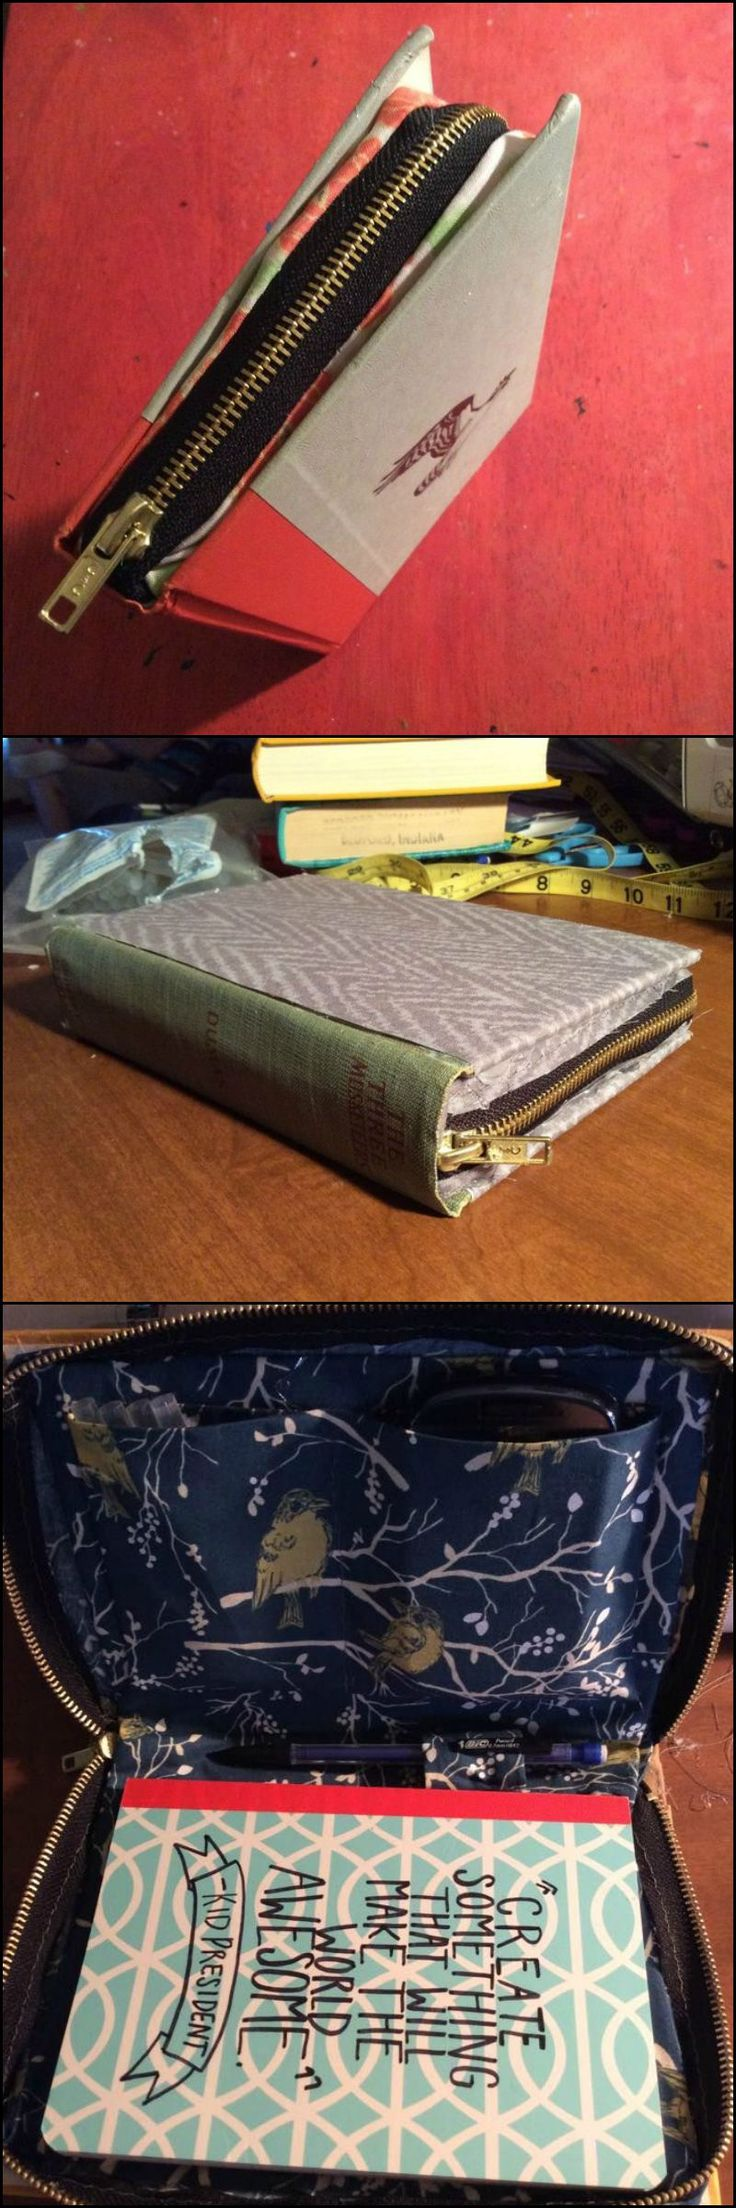 Learn How to Turn Old Hardbound Books into Zippered Clutches  http://craft.ideas2live4.com/2015/09/04/turn-hardbound-books-into-clutches-with-zipper/  Use it to store makeup for girls or everyday travel necessities for men. Or use it as a notebook and pencil holder for kids! These also make a great gift kits, where you can put simple gift items...  Do you have some old hardbound books to upcycle? If not, then you better be heading to the thrift store to grab some good-looking books now!